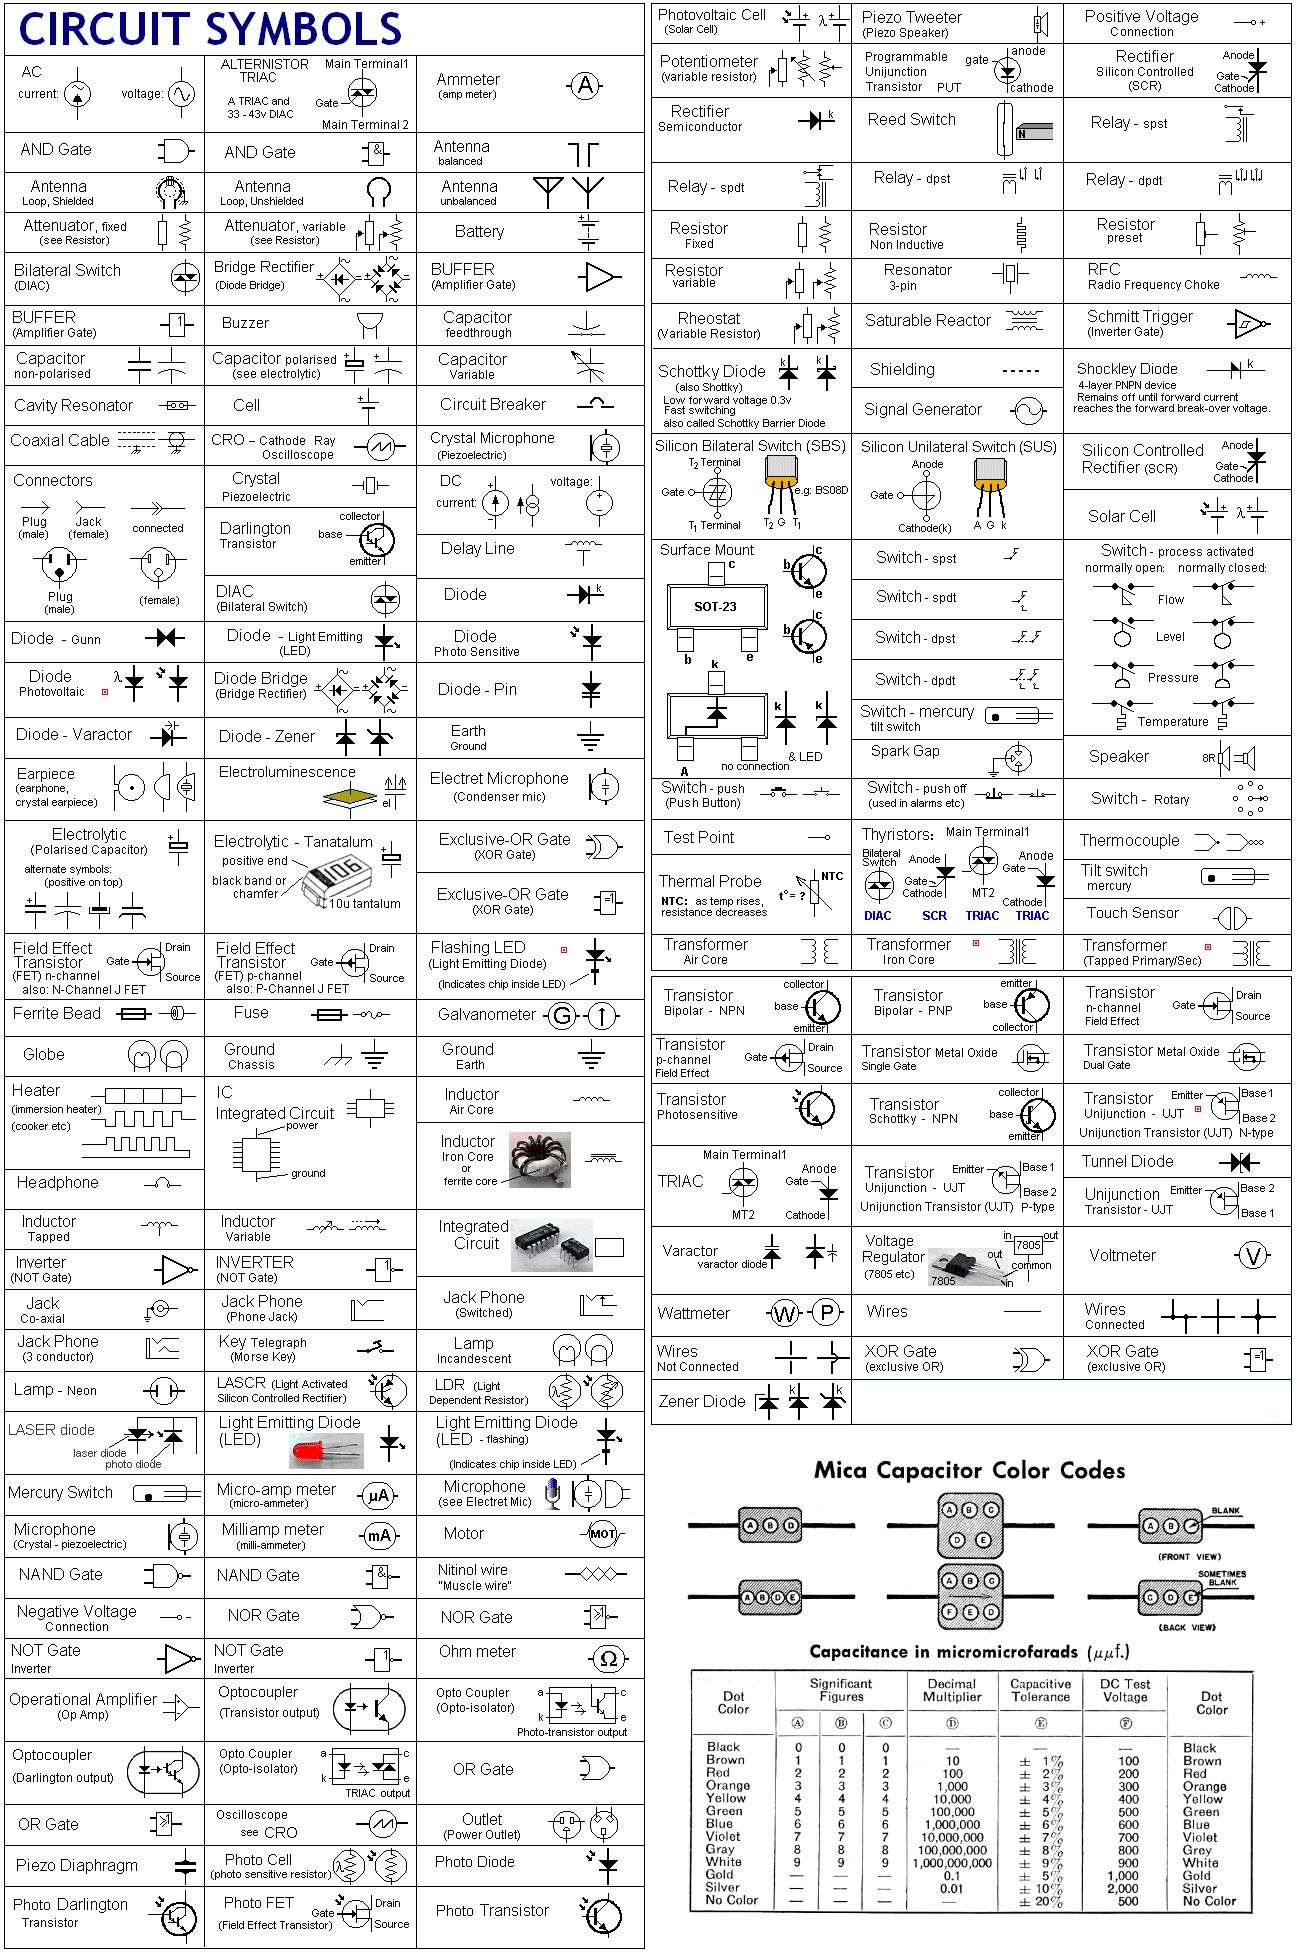 Schematic Symbols Chart | Electric Circuit Symbols: a considerably on ham radio circuits, ham radio block diagram, ham receiver schematic, ham radios for beginners,